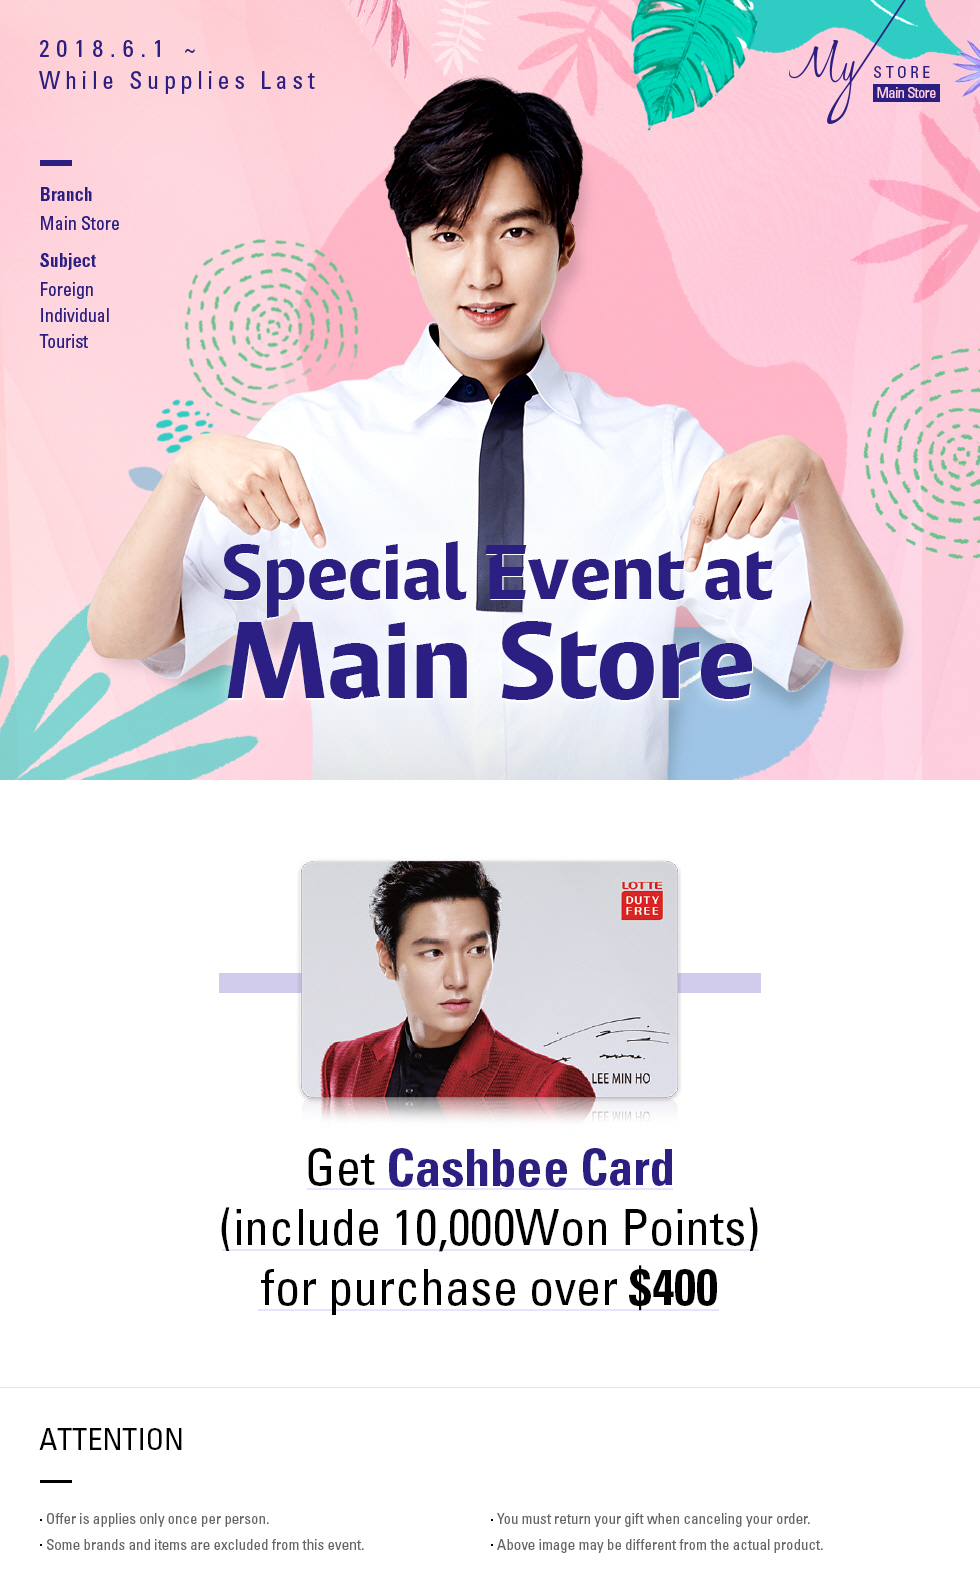 Main Store Special Event at Main Store